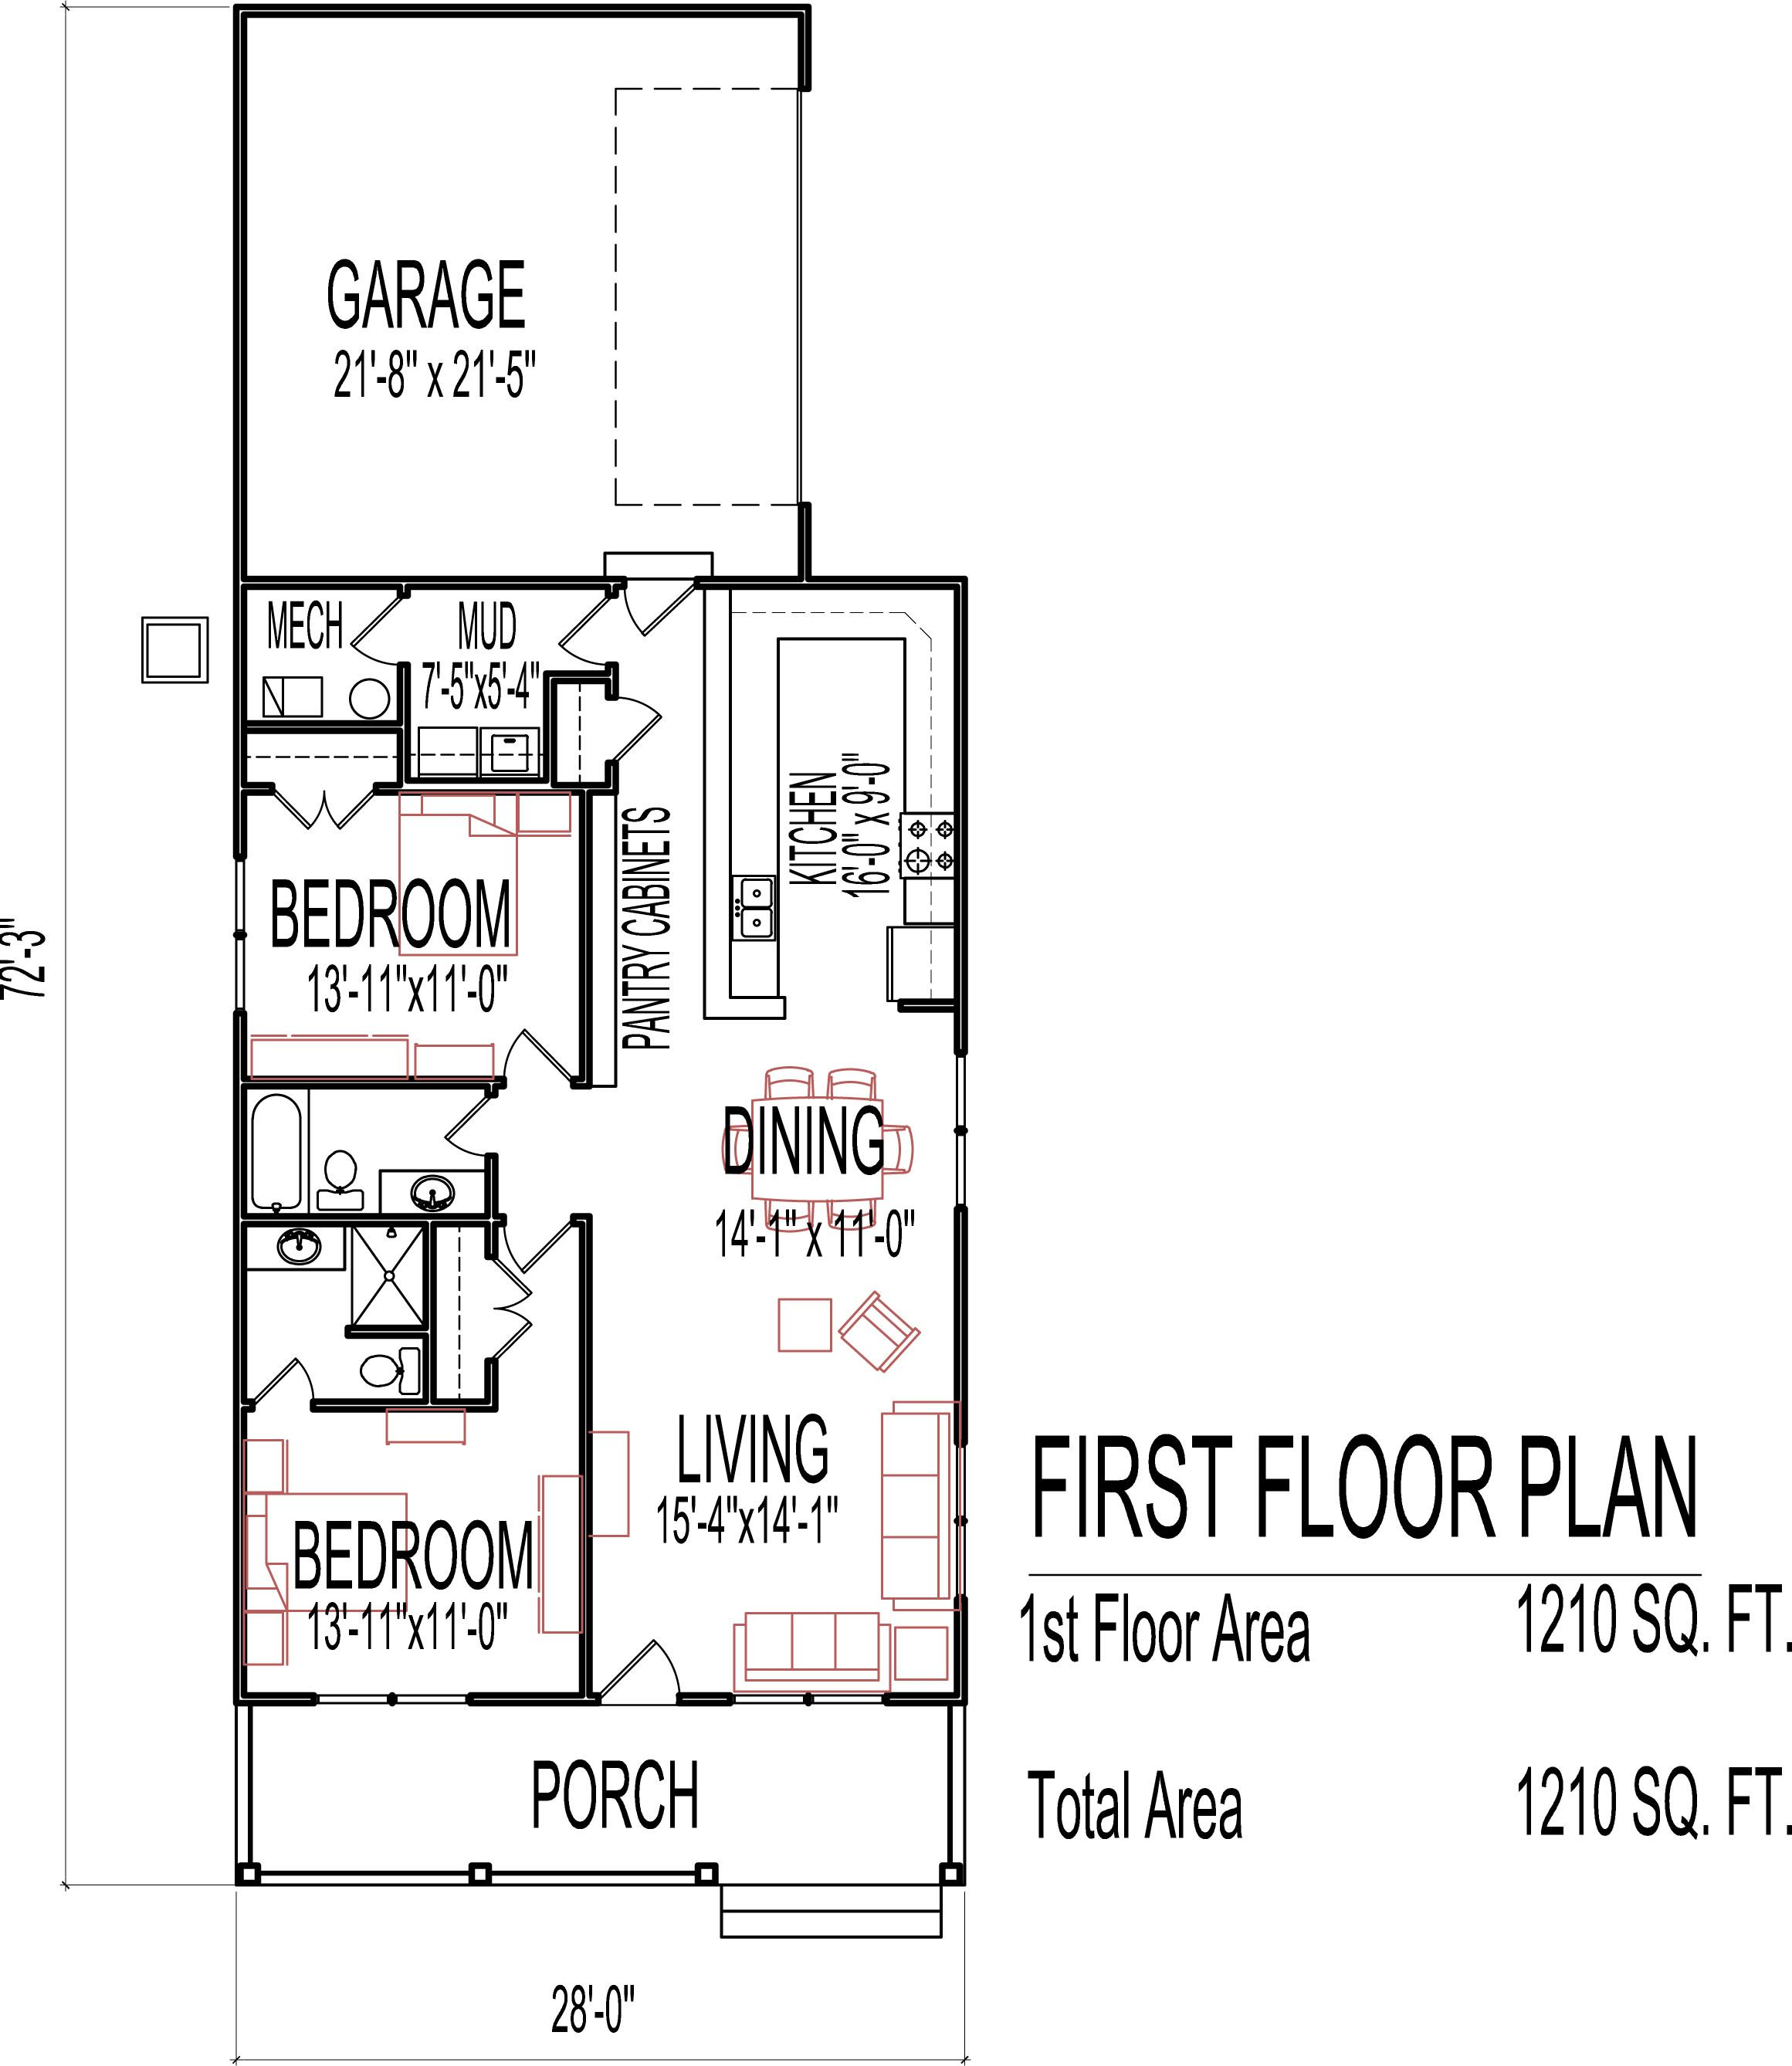 small low cost economical 2 bedroom 2 bath 1200 sq ft 50 3d floor plans lay out designs for 2 bedroom house or